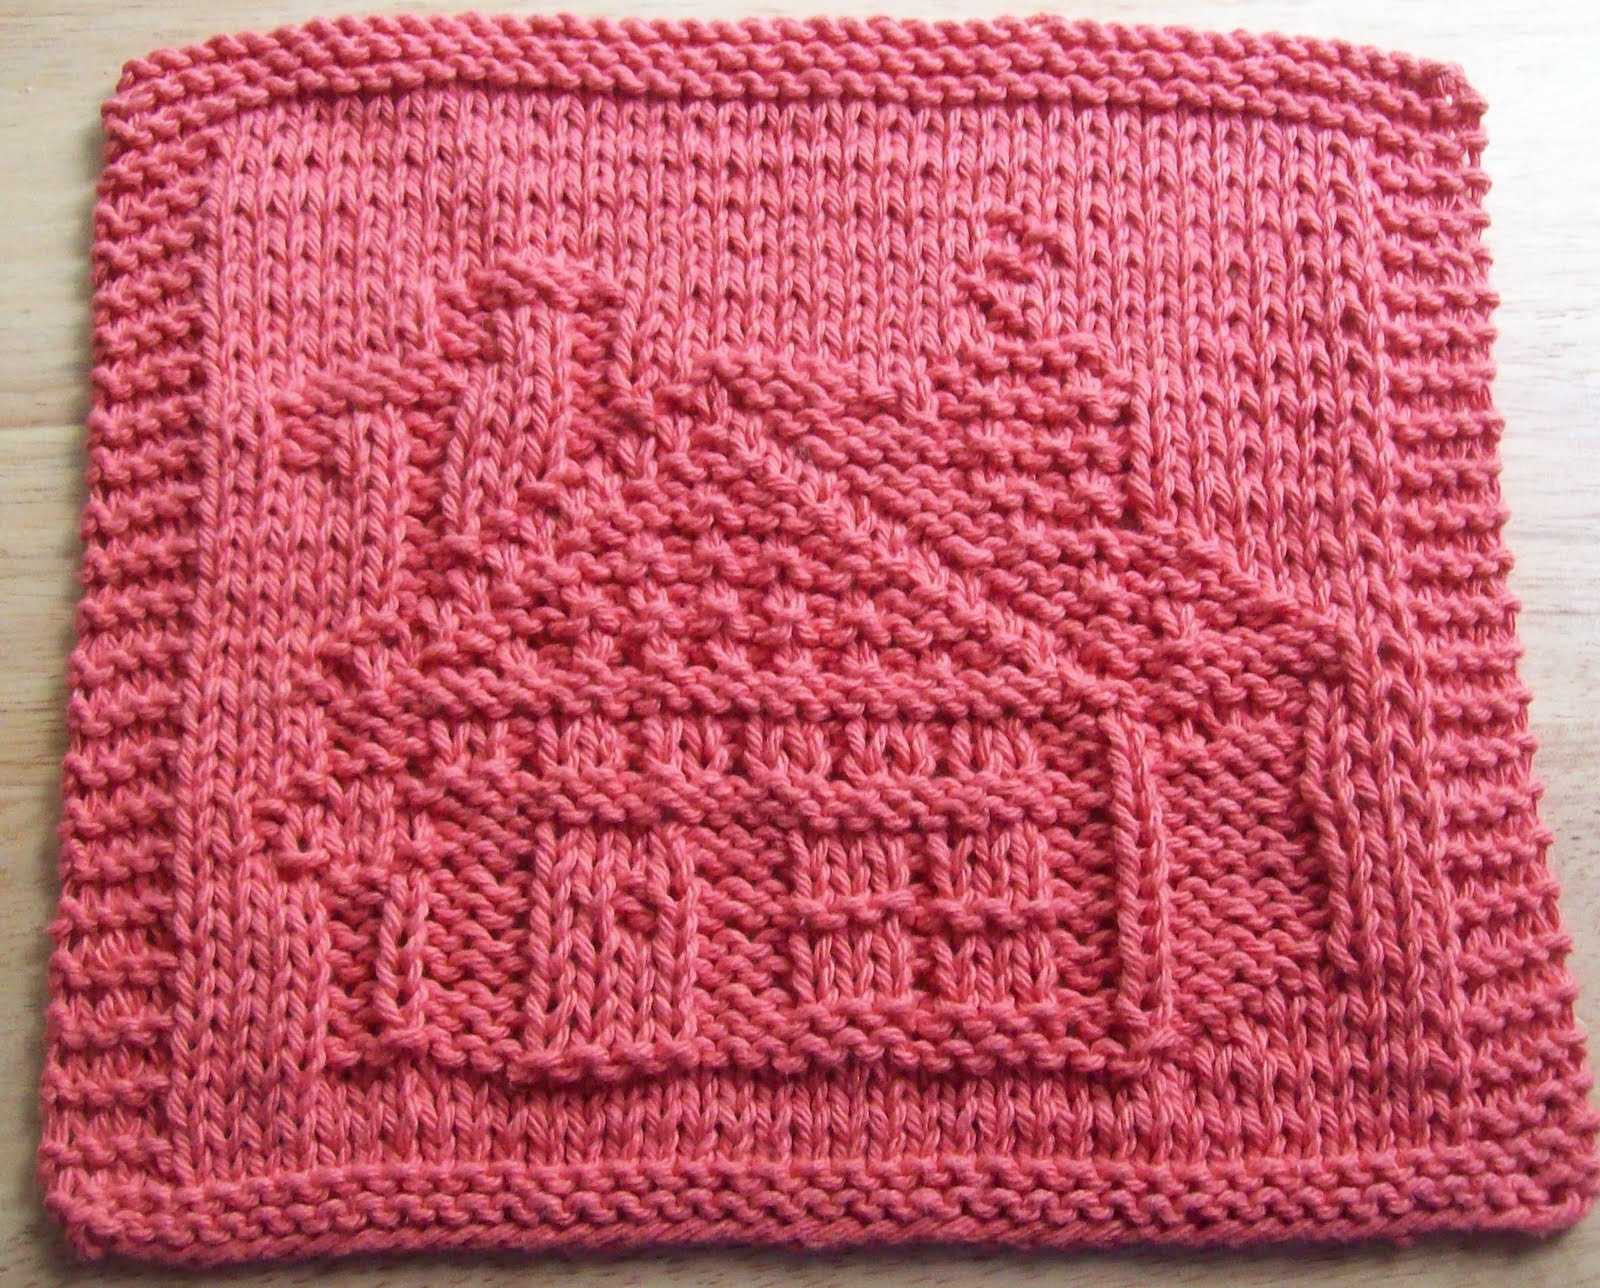 Knitted Dishcloth Inspirational Knit Dish Cloth Patterns Pattern Collections Of Gorgeous 46 Photos Knitted Dishcloth